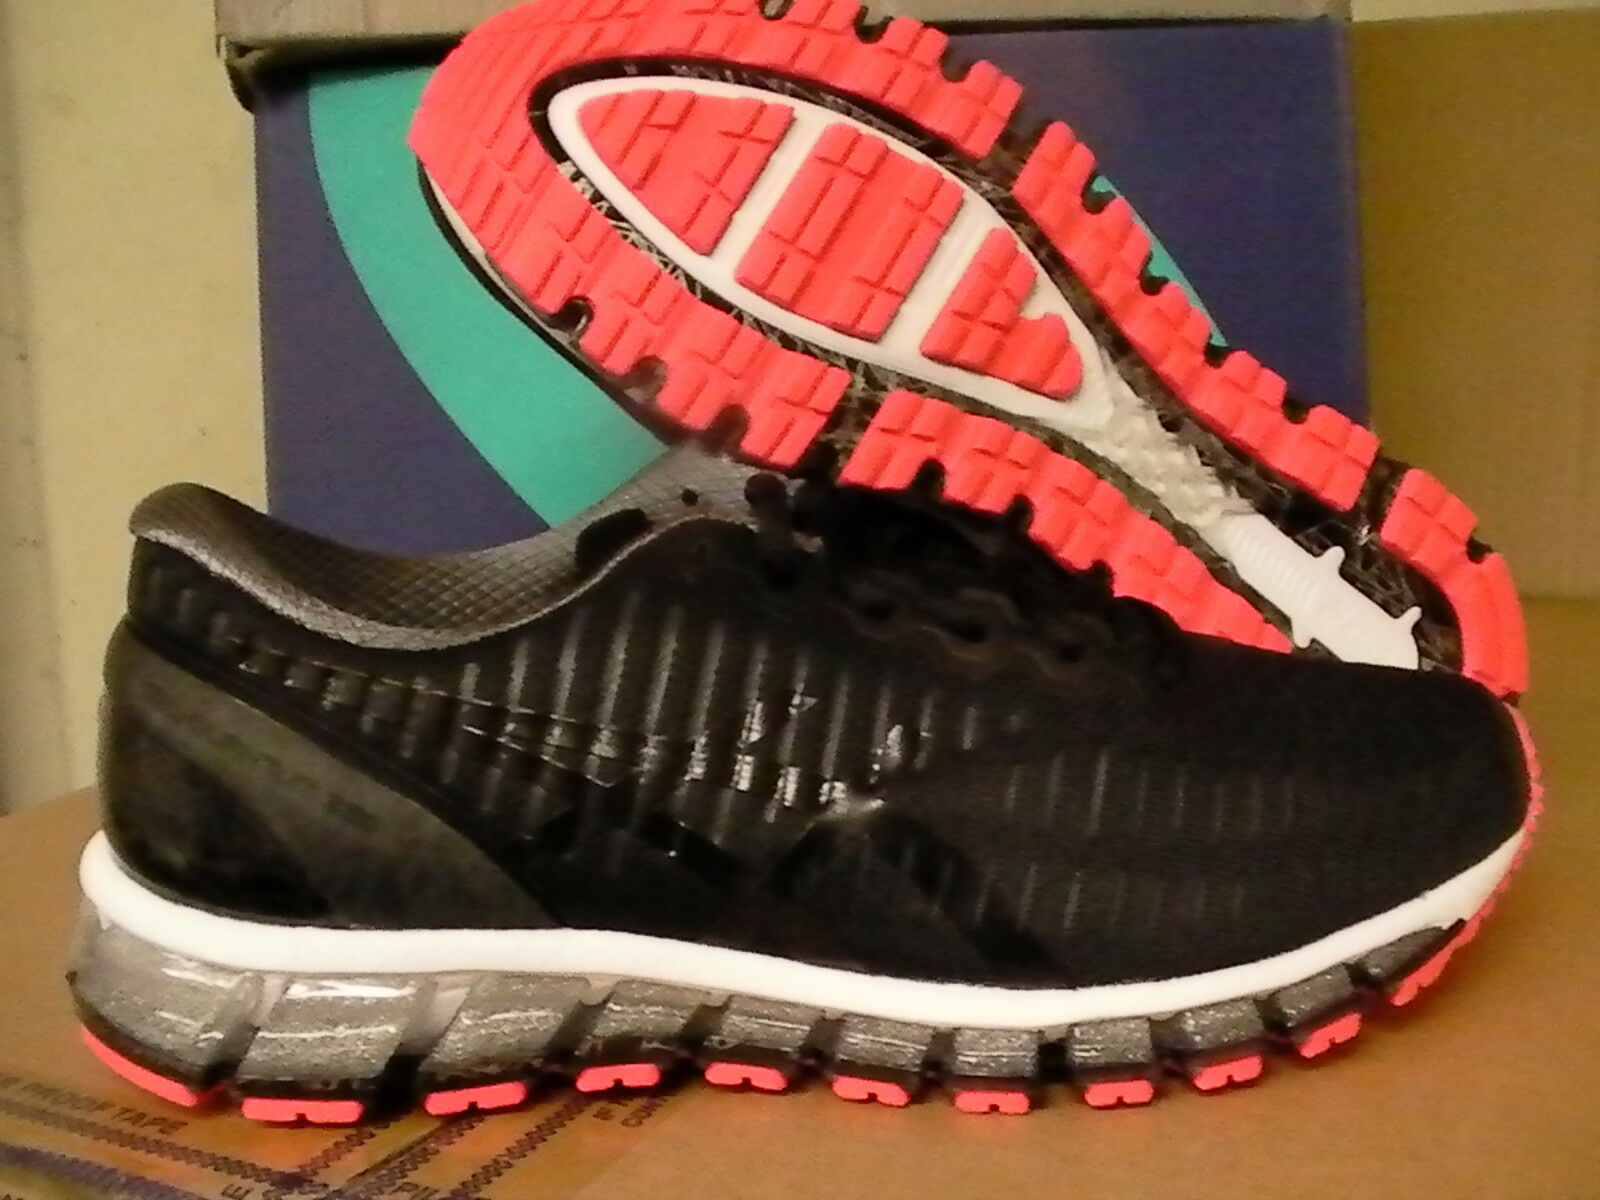 Asics women's gel quantum 360 running shoes black onyx hot red size 11.5 us